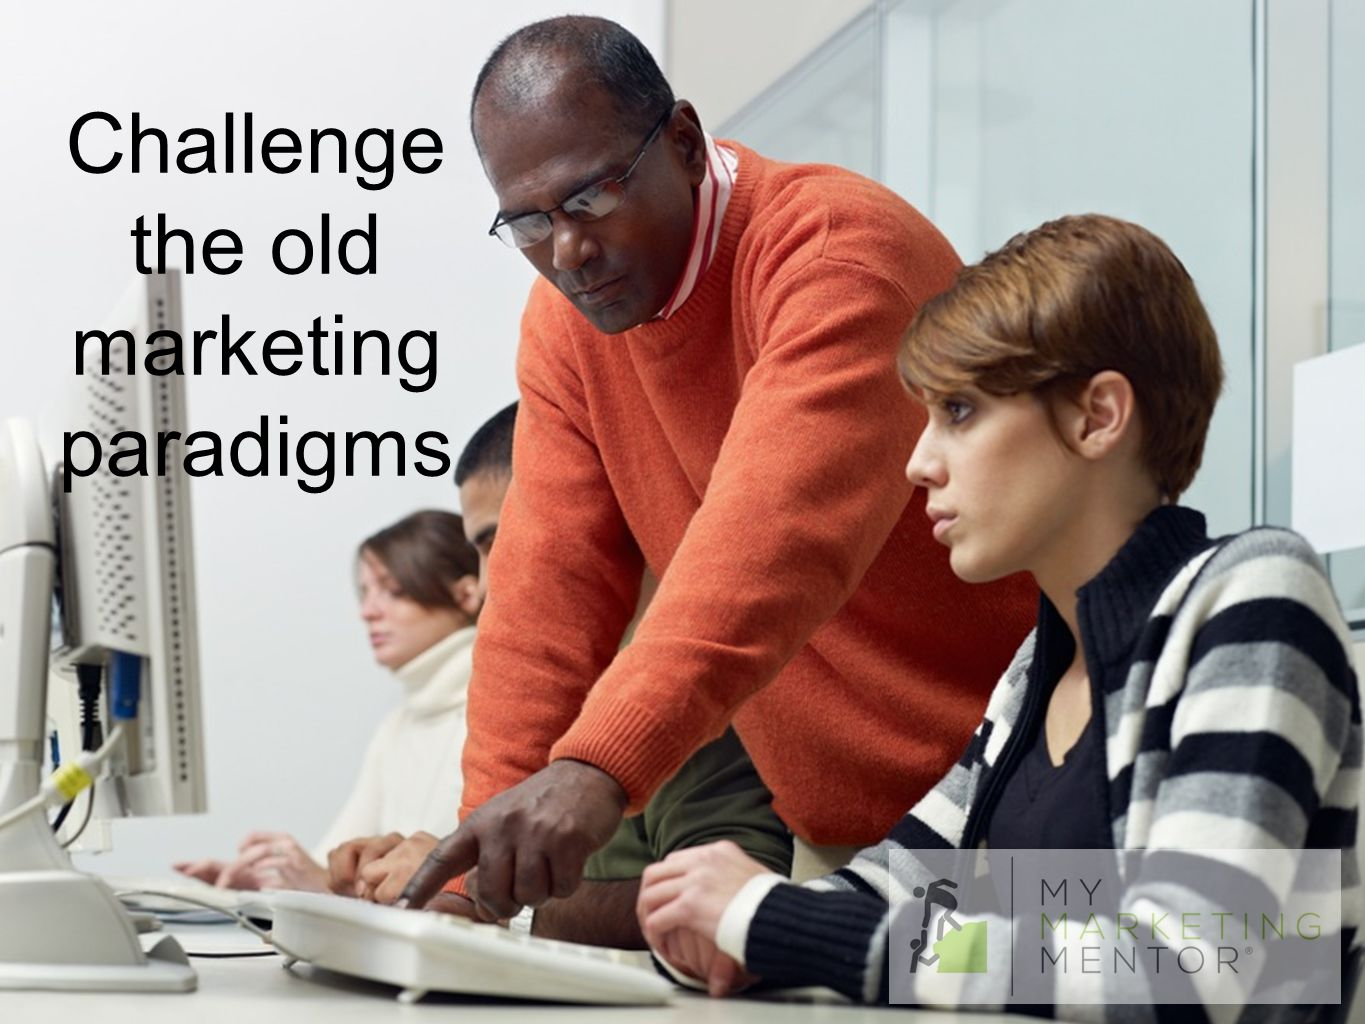 Challenge the old marketing paradigms